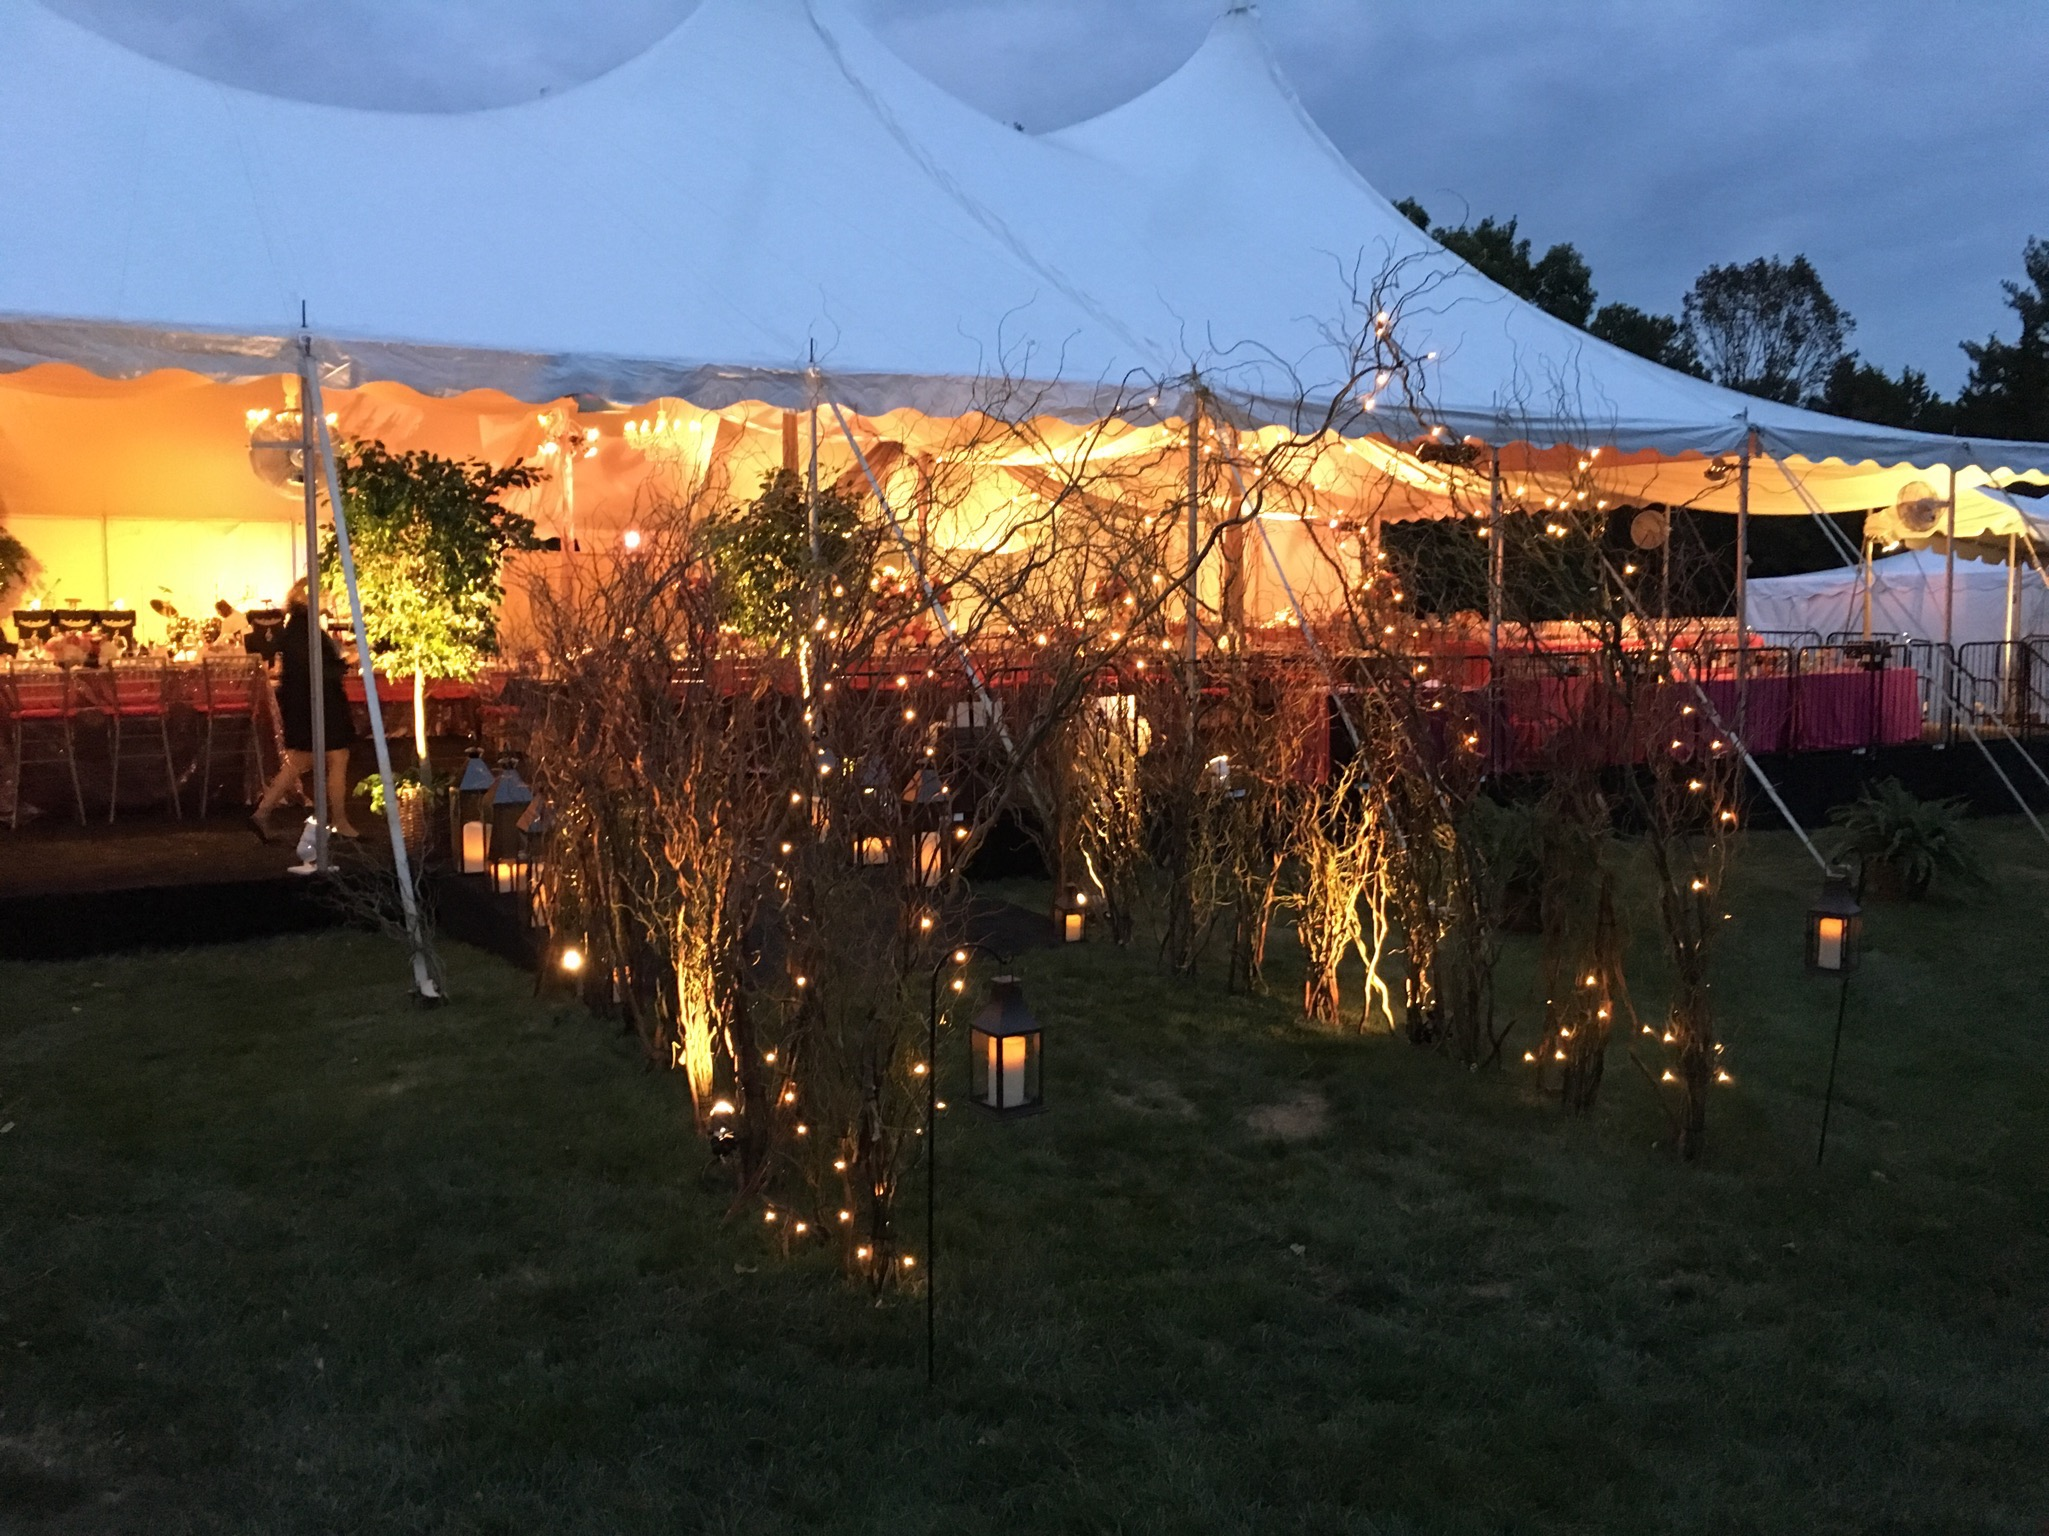 A branch tunnel helps light the way to an outdoor fall wedding,